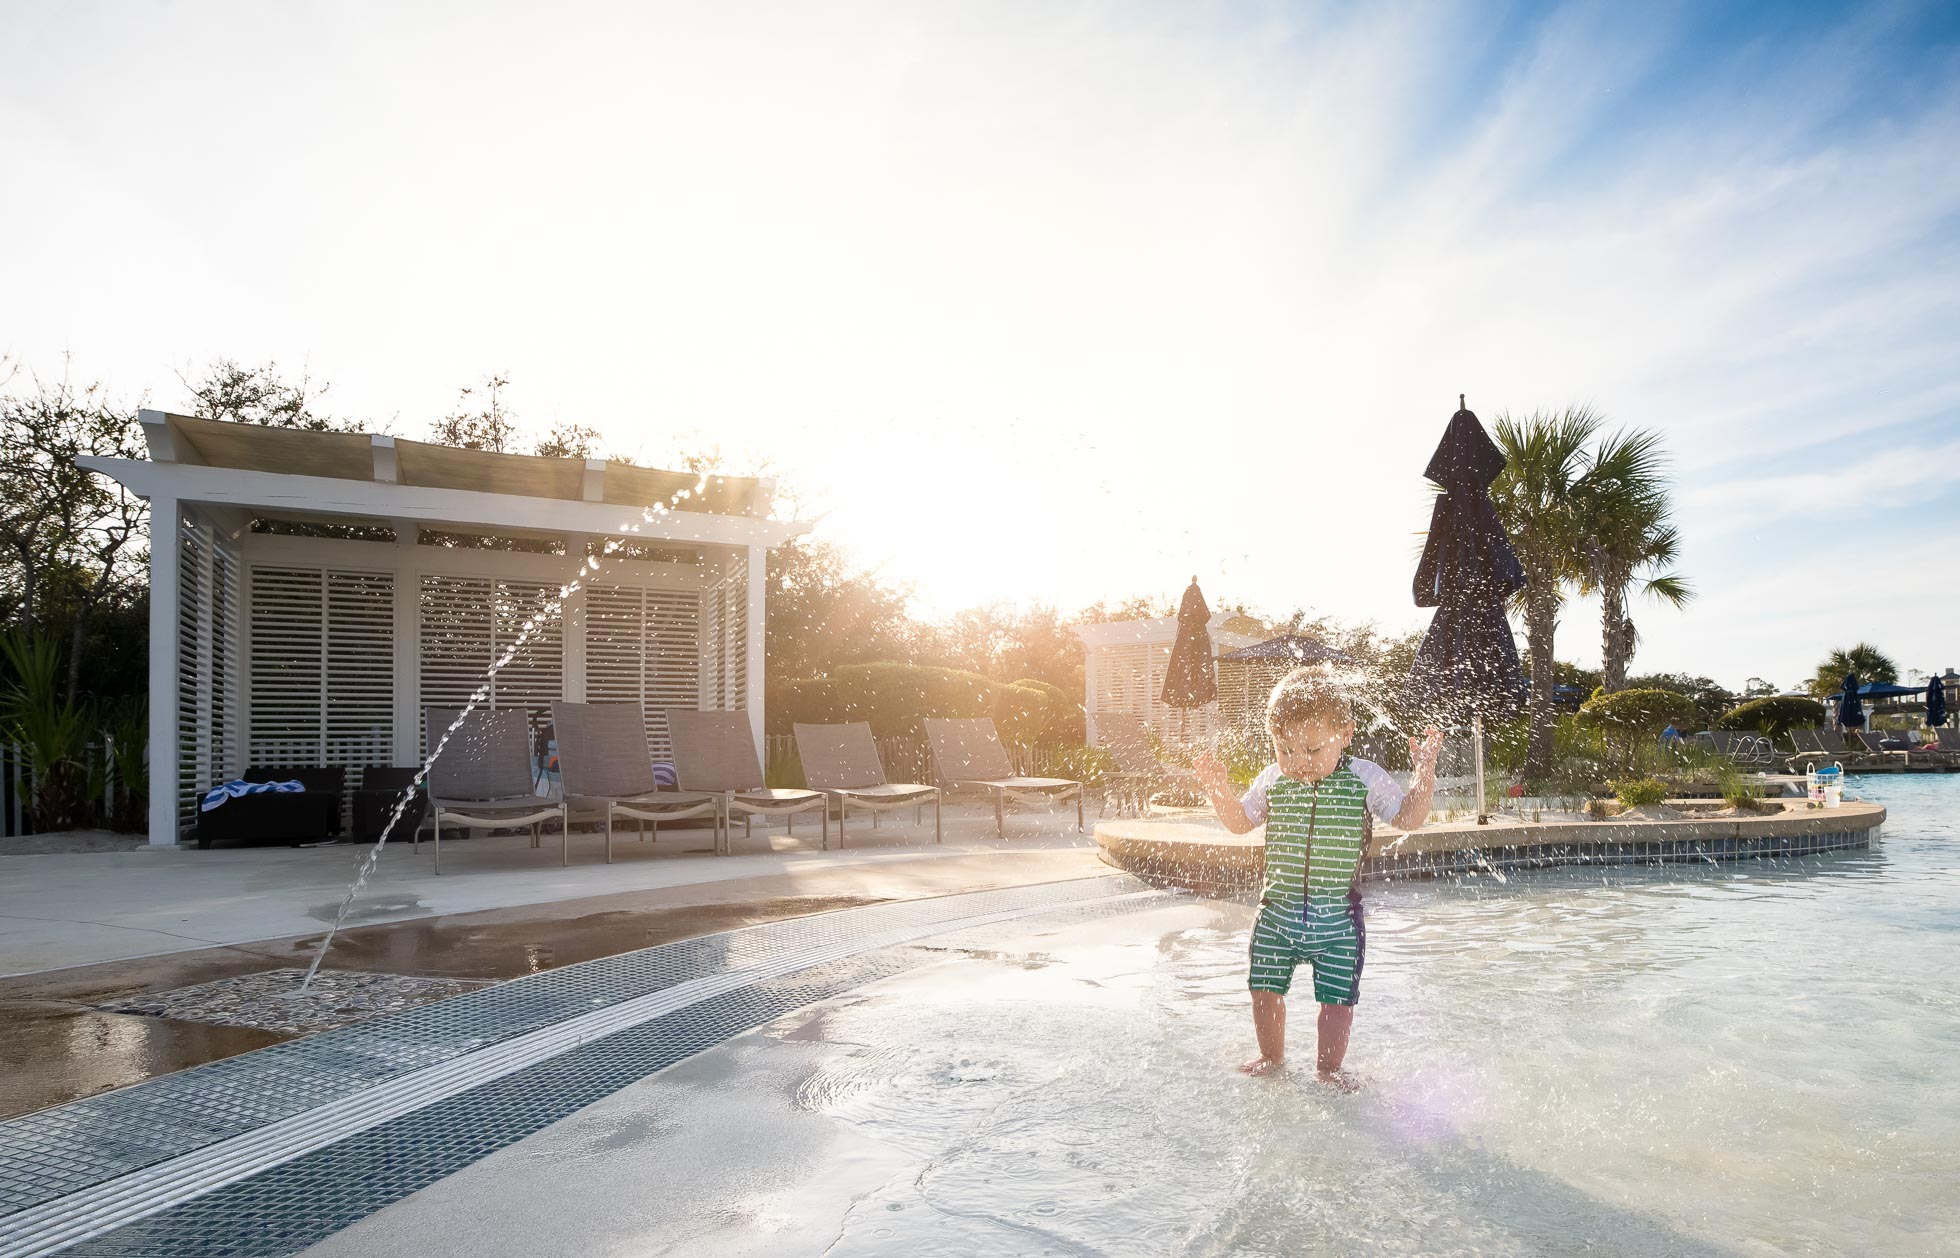 toddler palying in fountains at swimming pool summer after edit by megan arndt